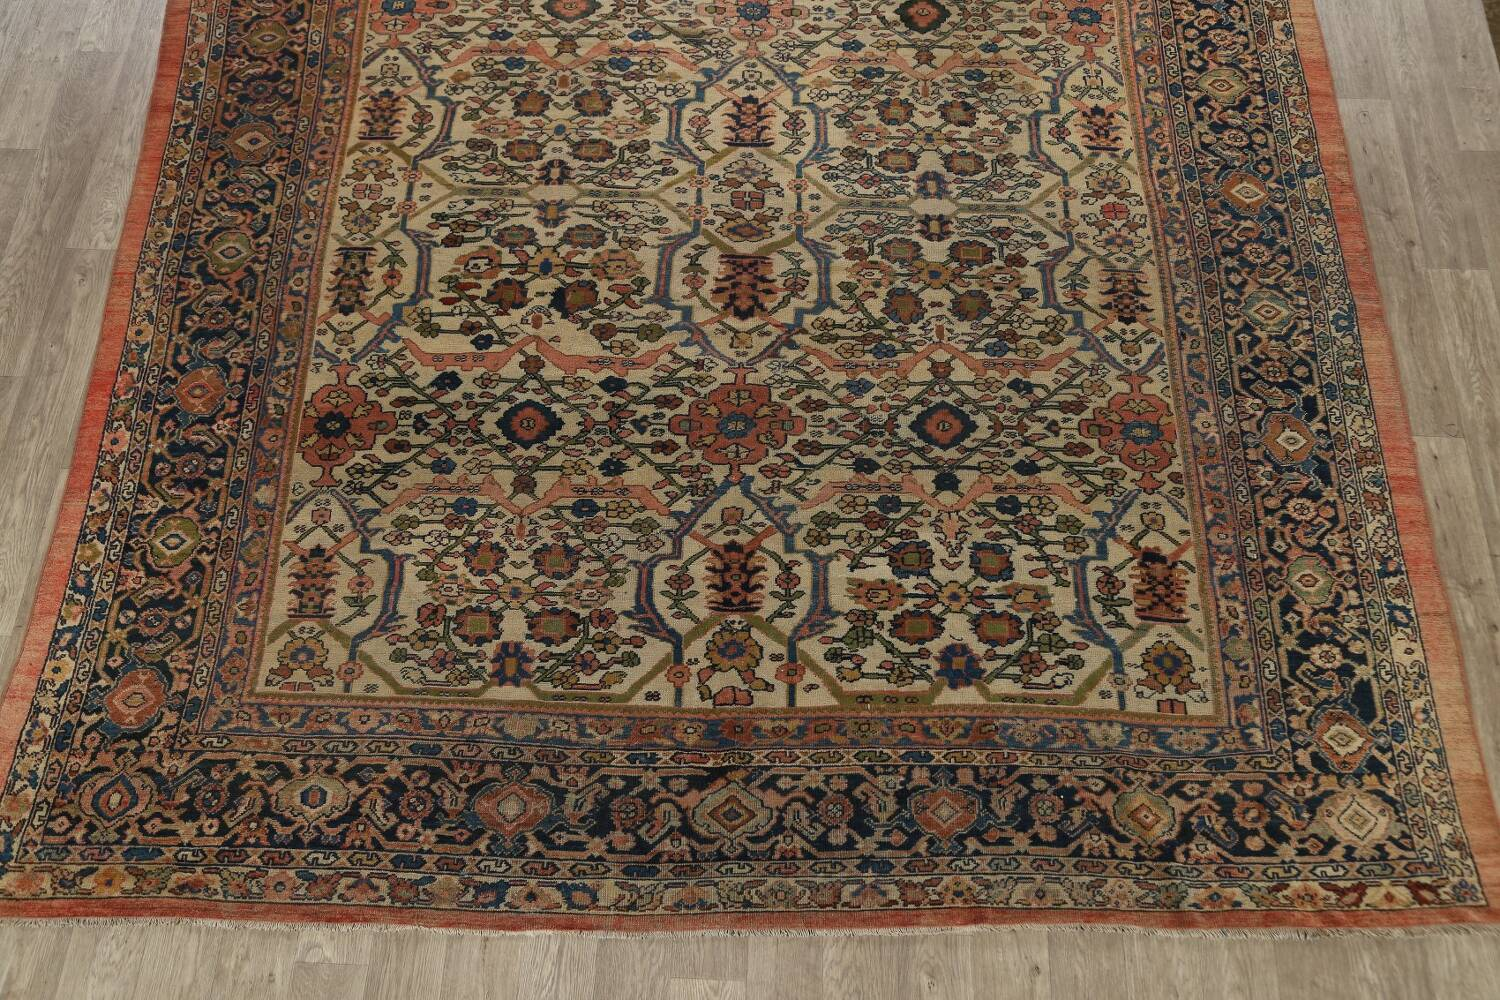 Pre-1900 Antique Vegetable Dye Sultanabad Persian Area Rug 10x13 image 8